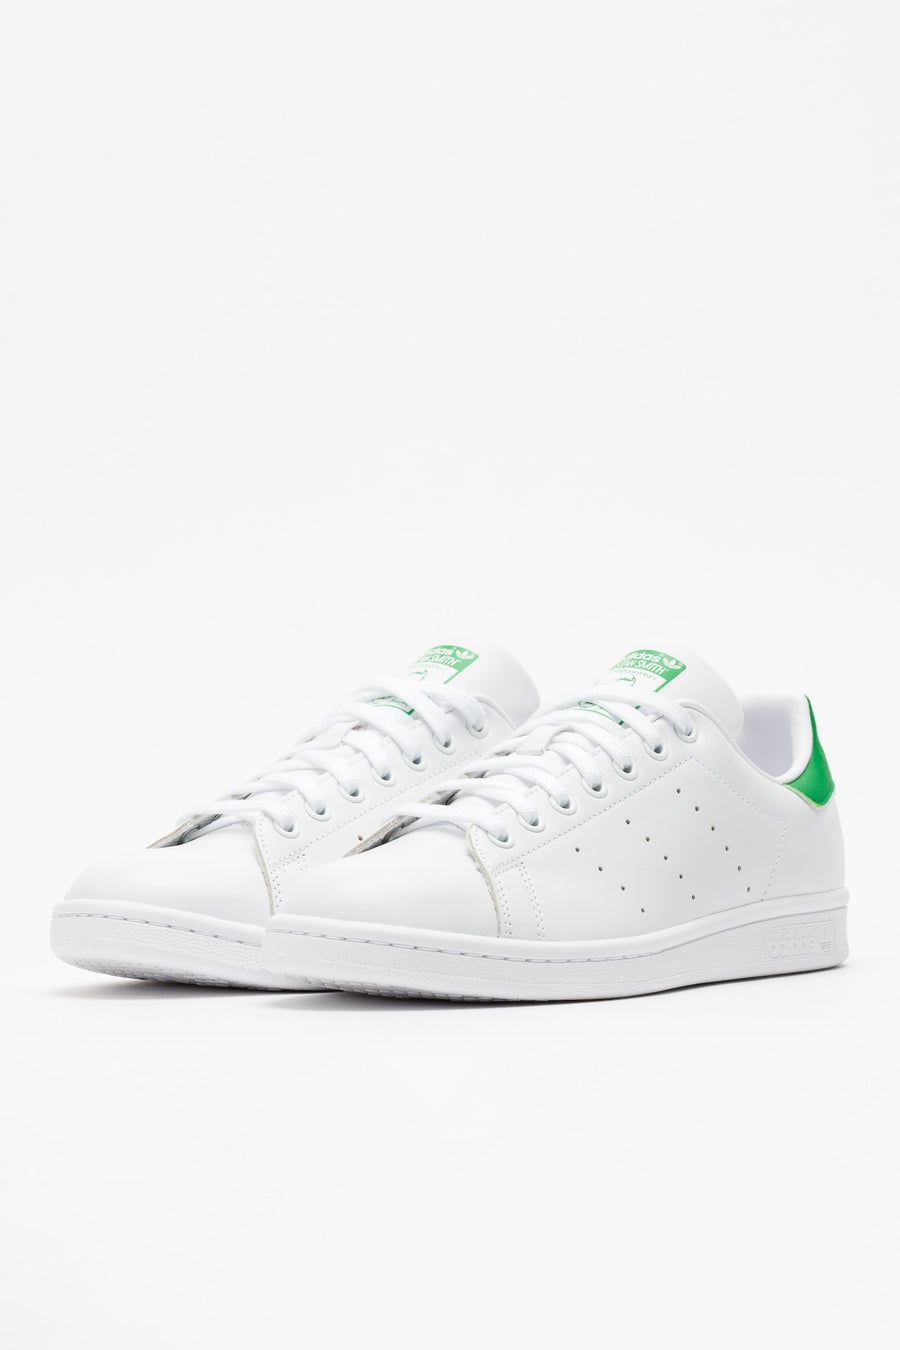 Adidas Stan Smith in Core White/Fairway - Notre